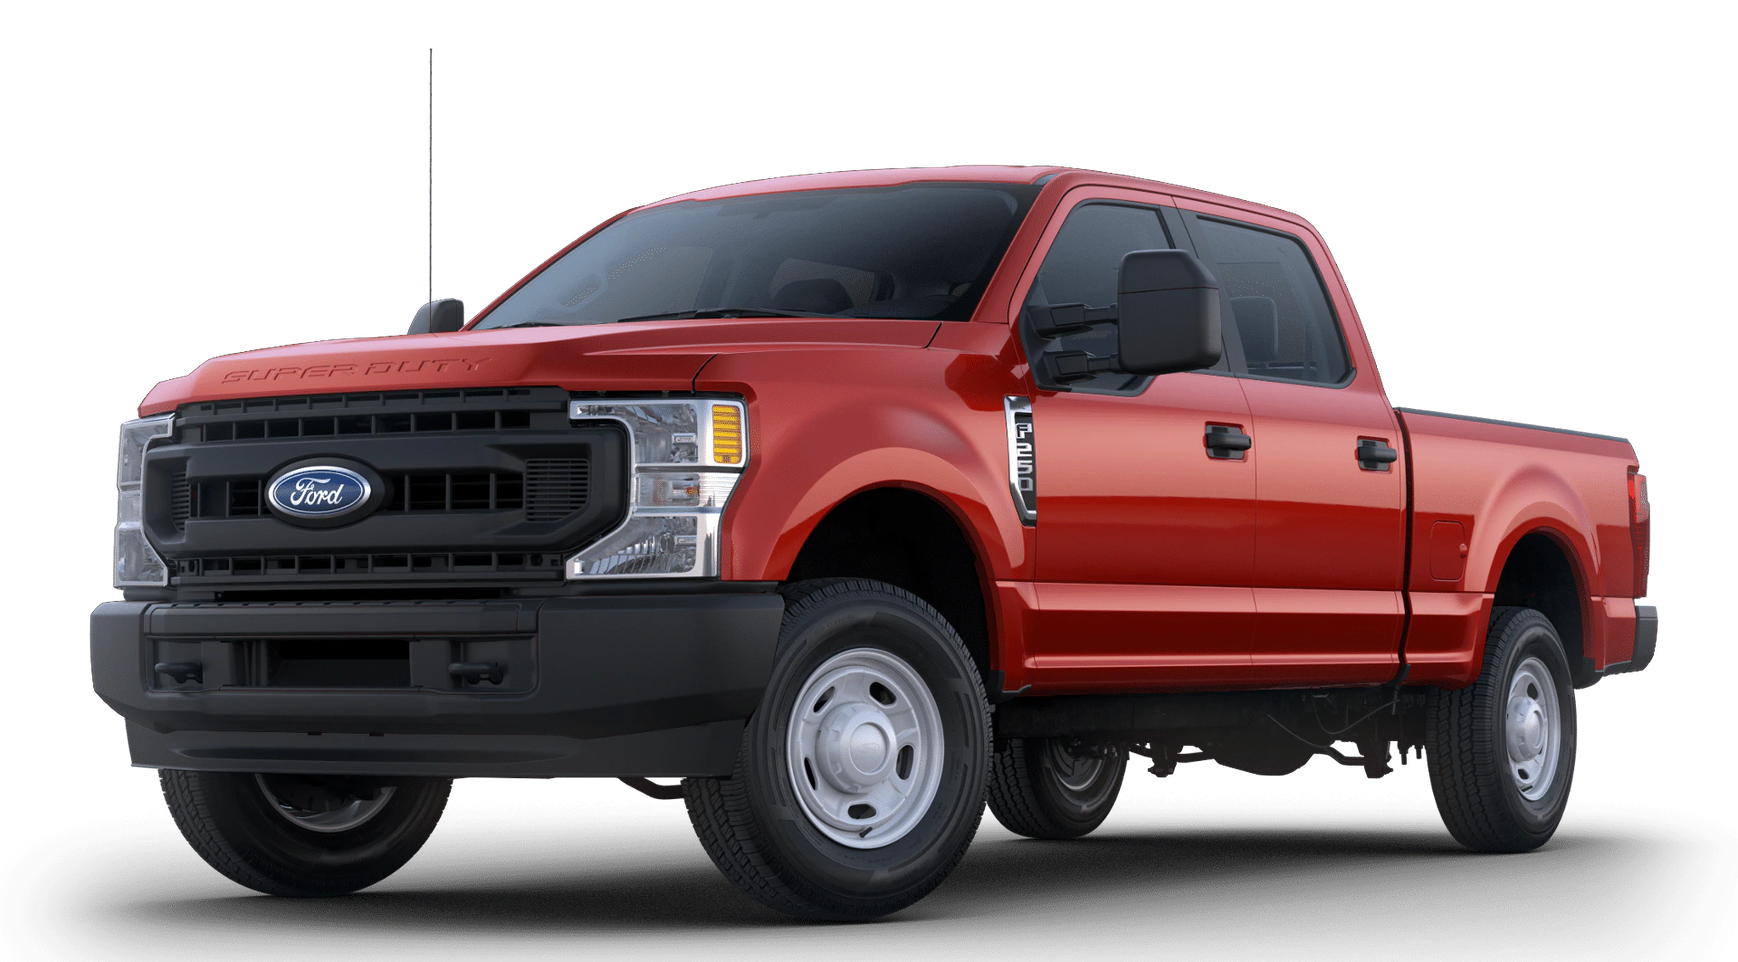 Ford F-250 2020 XL 6.7 V8 OHV Power Stroke® Turbo Diesel Дизель 10-ст АКПП Задний